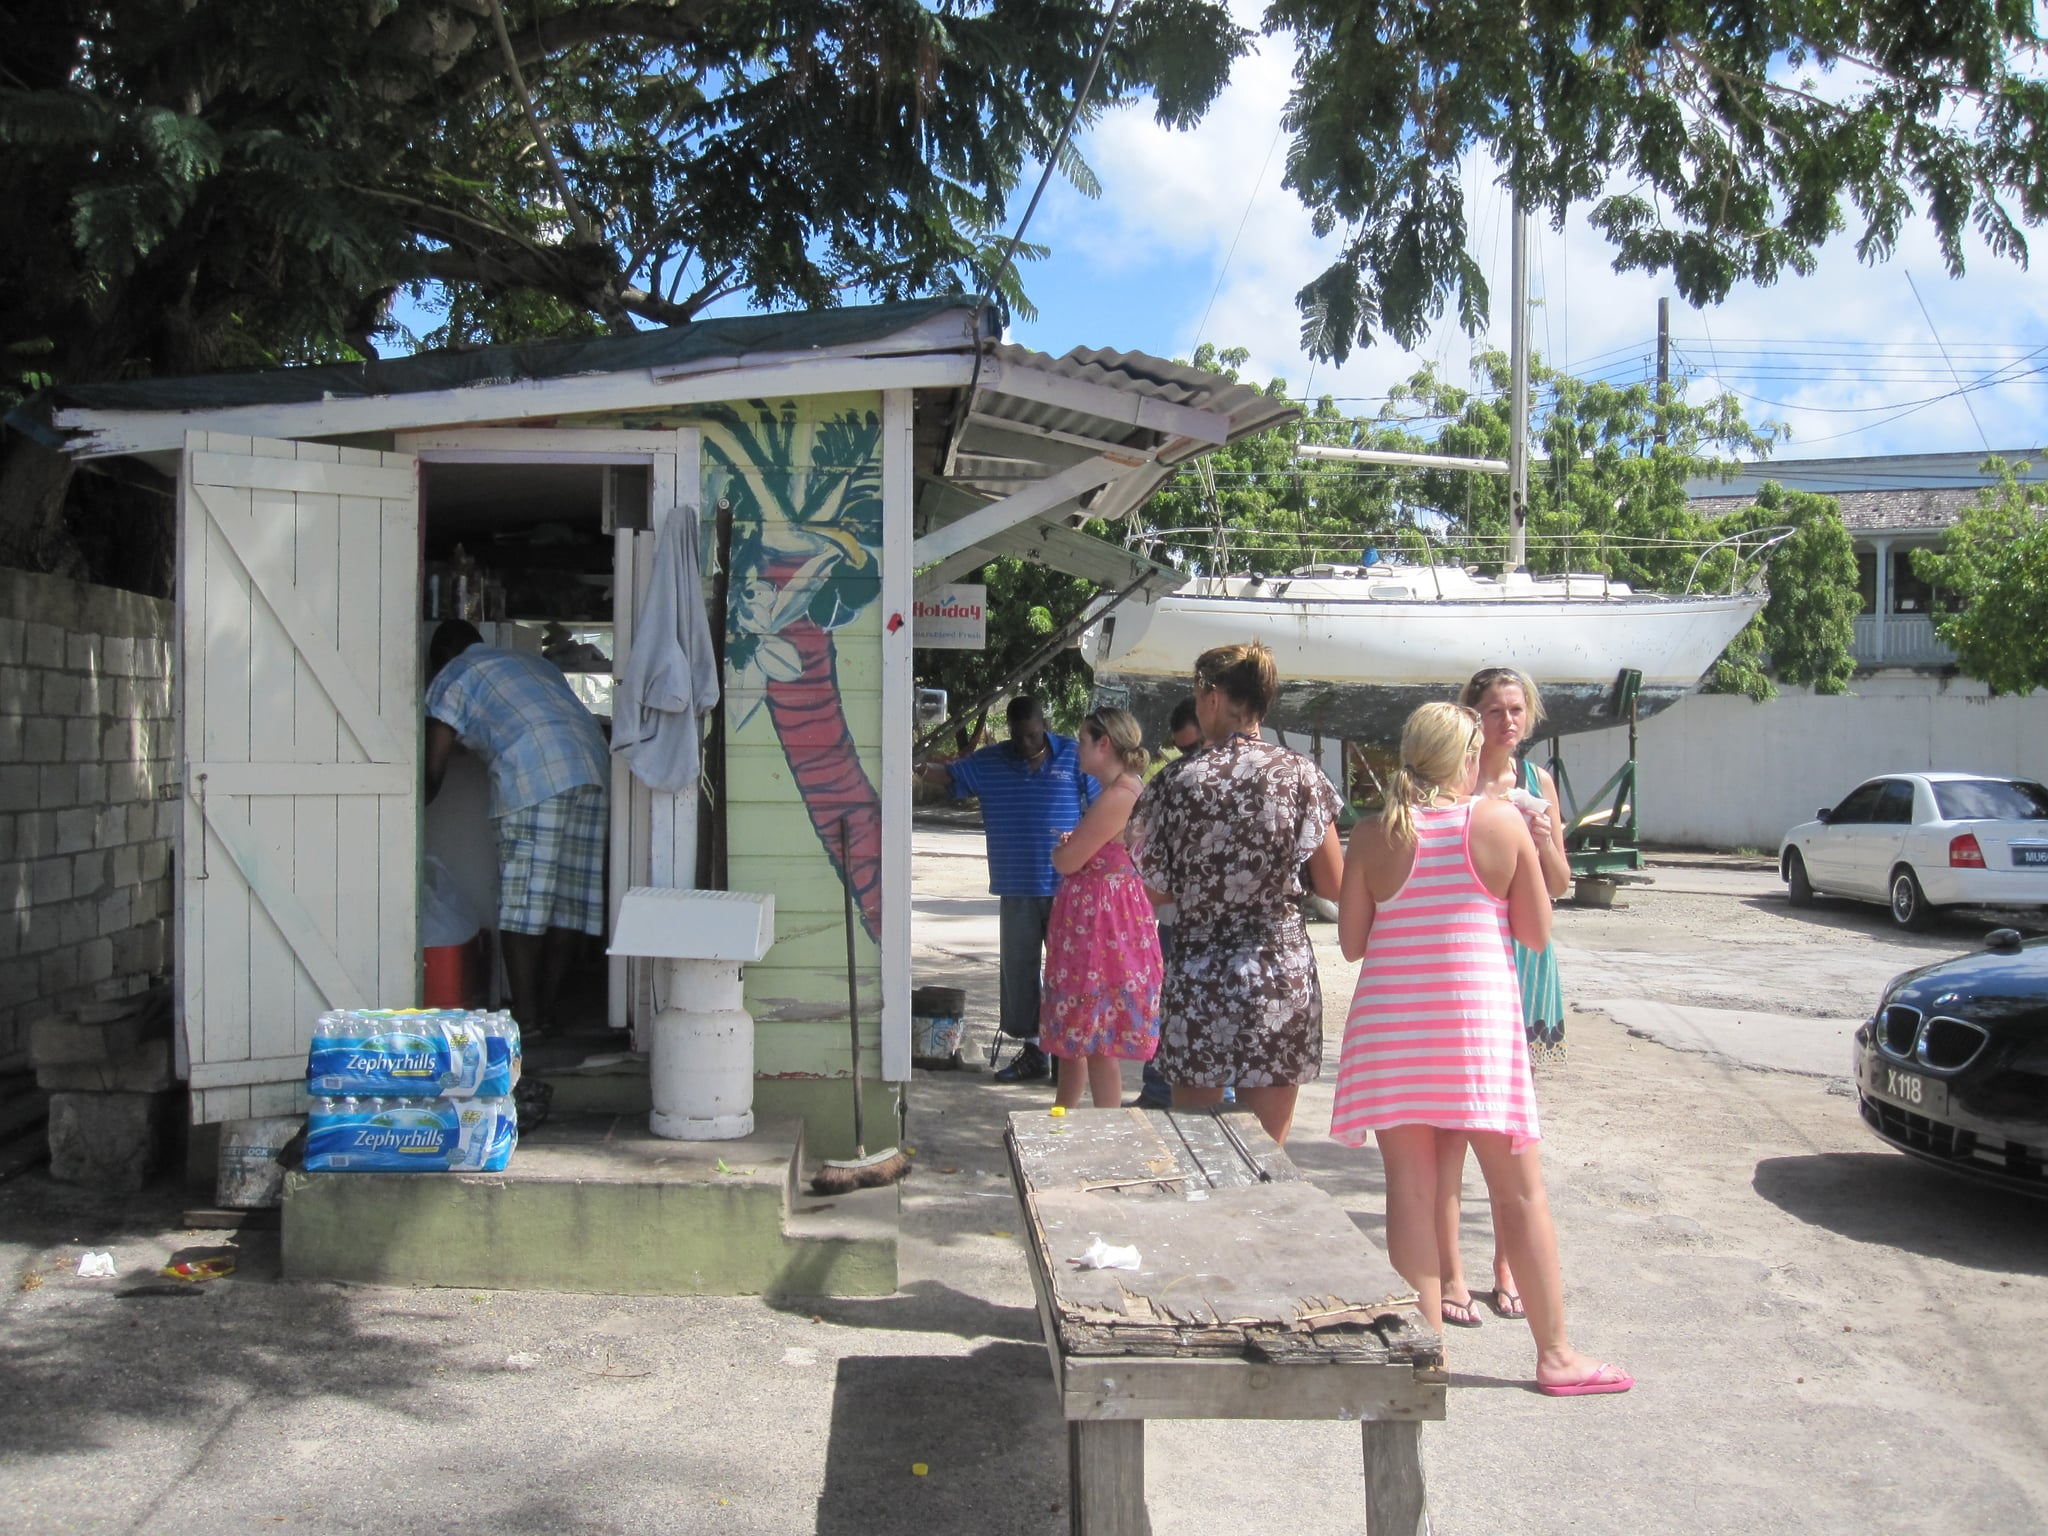 The best thing I ate was a fried fish sandwich from this small seaside shack, Coz. The sandwiches are renowned across the island of Barbados, and both locals and tourists flock to the stand for a quick and affordable bite.